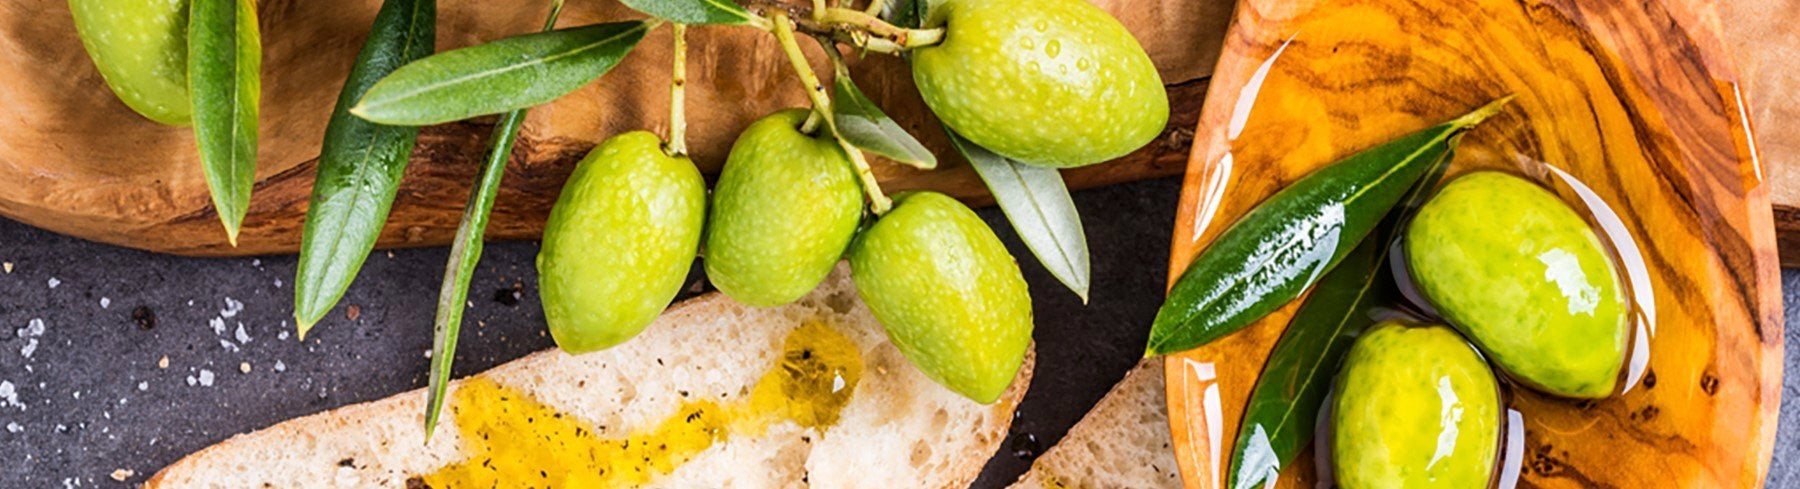 High Polyphenol Olive Oil